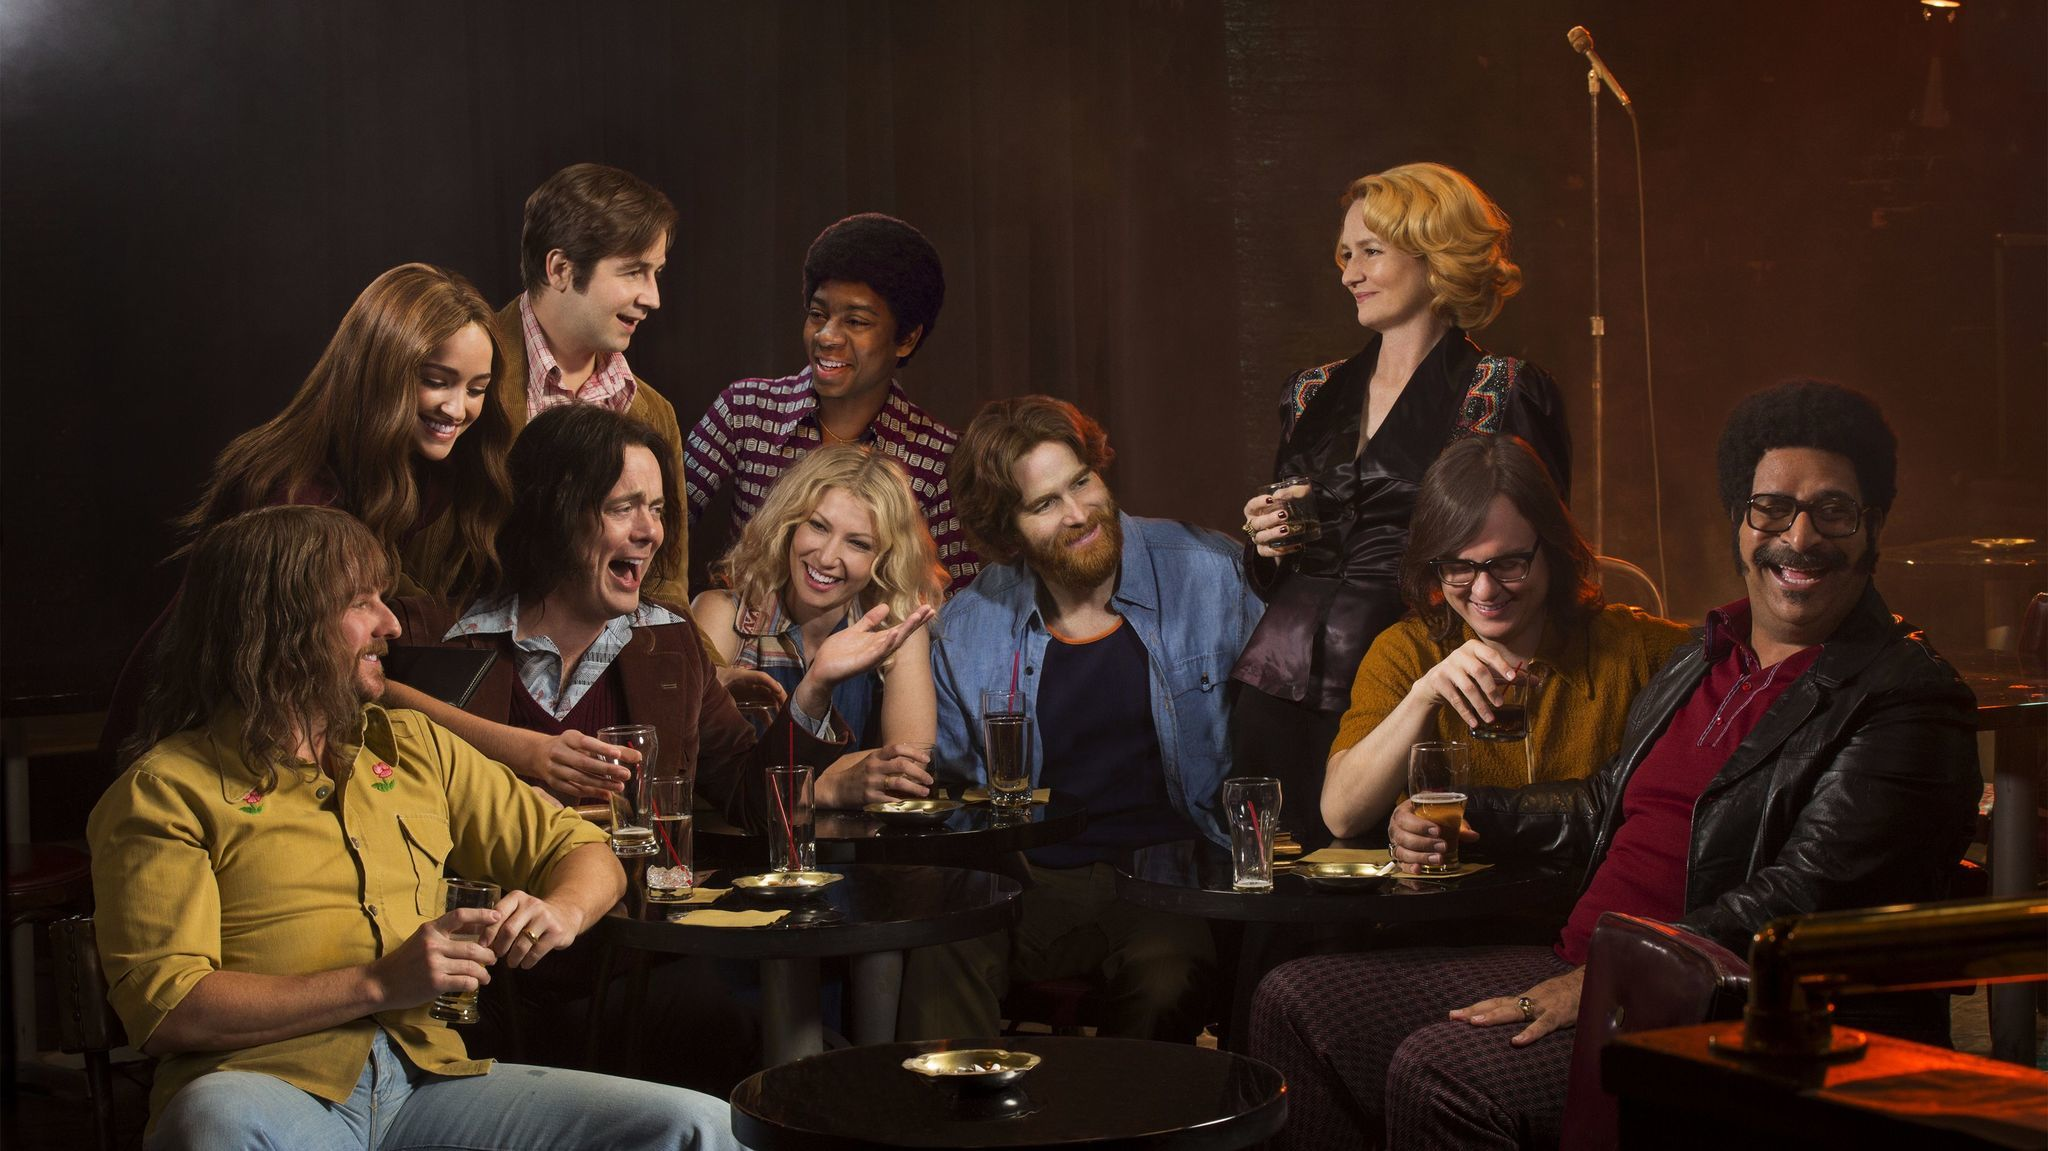 Brianne Howey as Kay, Michael Angarano as Eddie, RJ Cyler as Adam and Melissa Leo as Goldie; (seated) Stephen Guarino as Sully, Jon Daly as Arnie, Ari Graynor as Cassie, Andrew Santino as Bill, Clark Duke as Ron and Erik Griffin as Ralph in Showtime's series